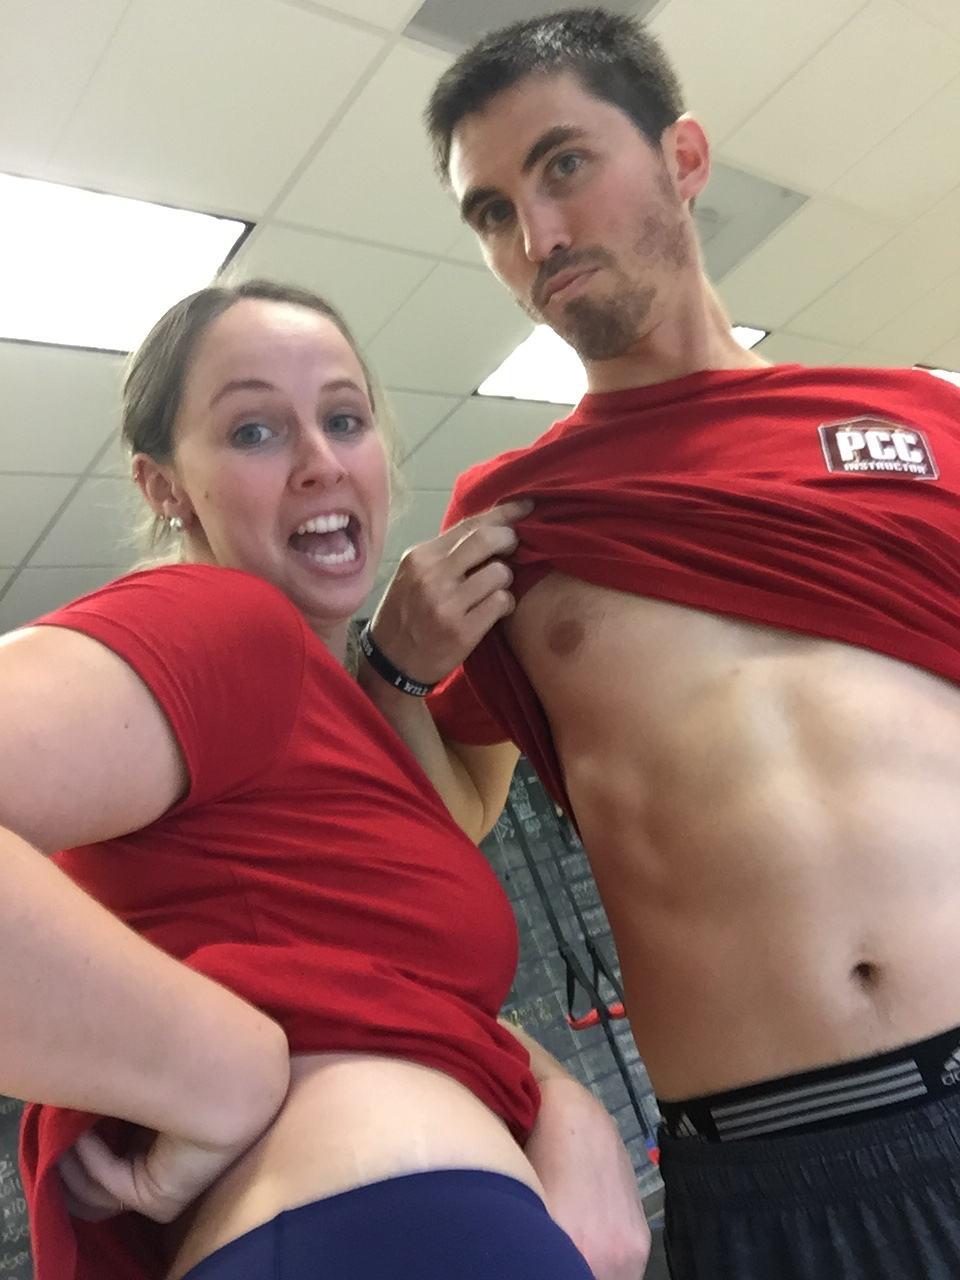 Circa August, 2016.No, those abs aren't airbrushed, they've been earned through trial-and-error, discipline, and consistency...oh, and intentional cheating every week!